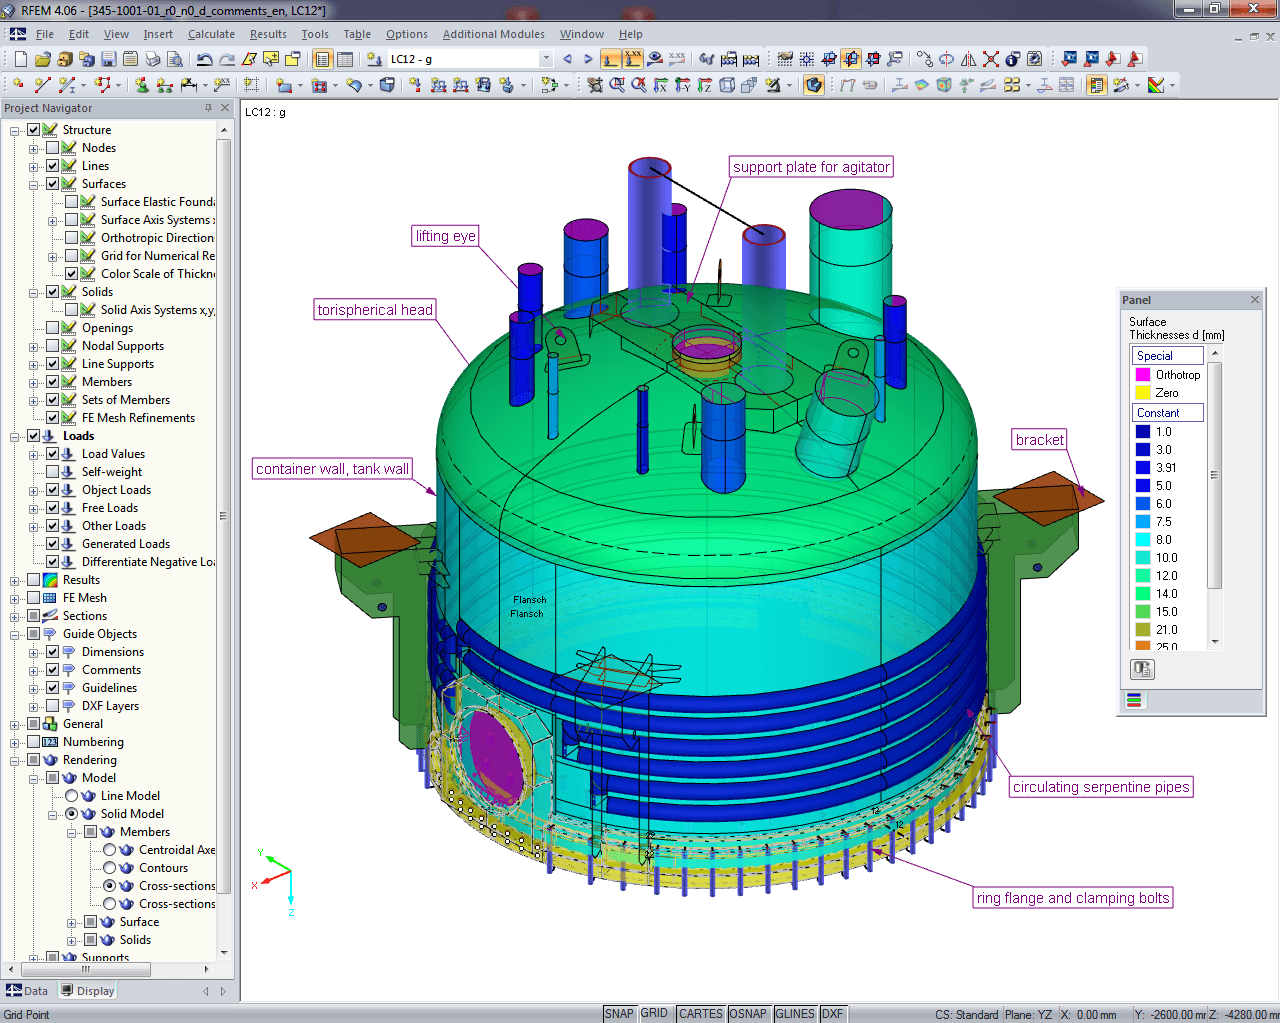 Model analizy w RFEM (© Peter & Partner)